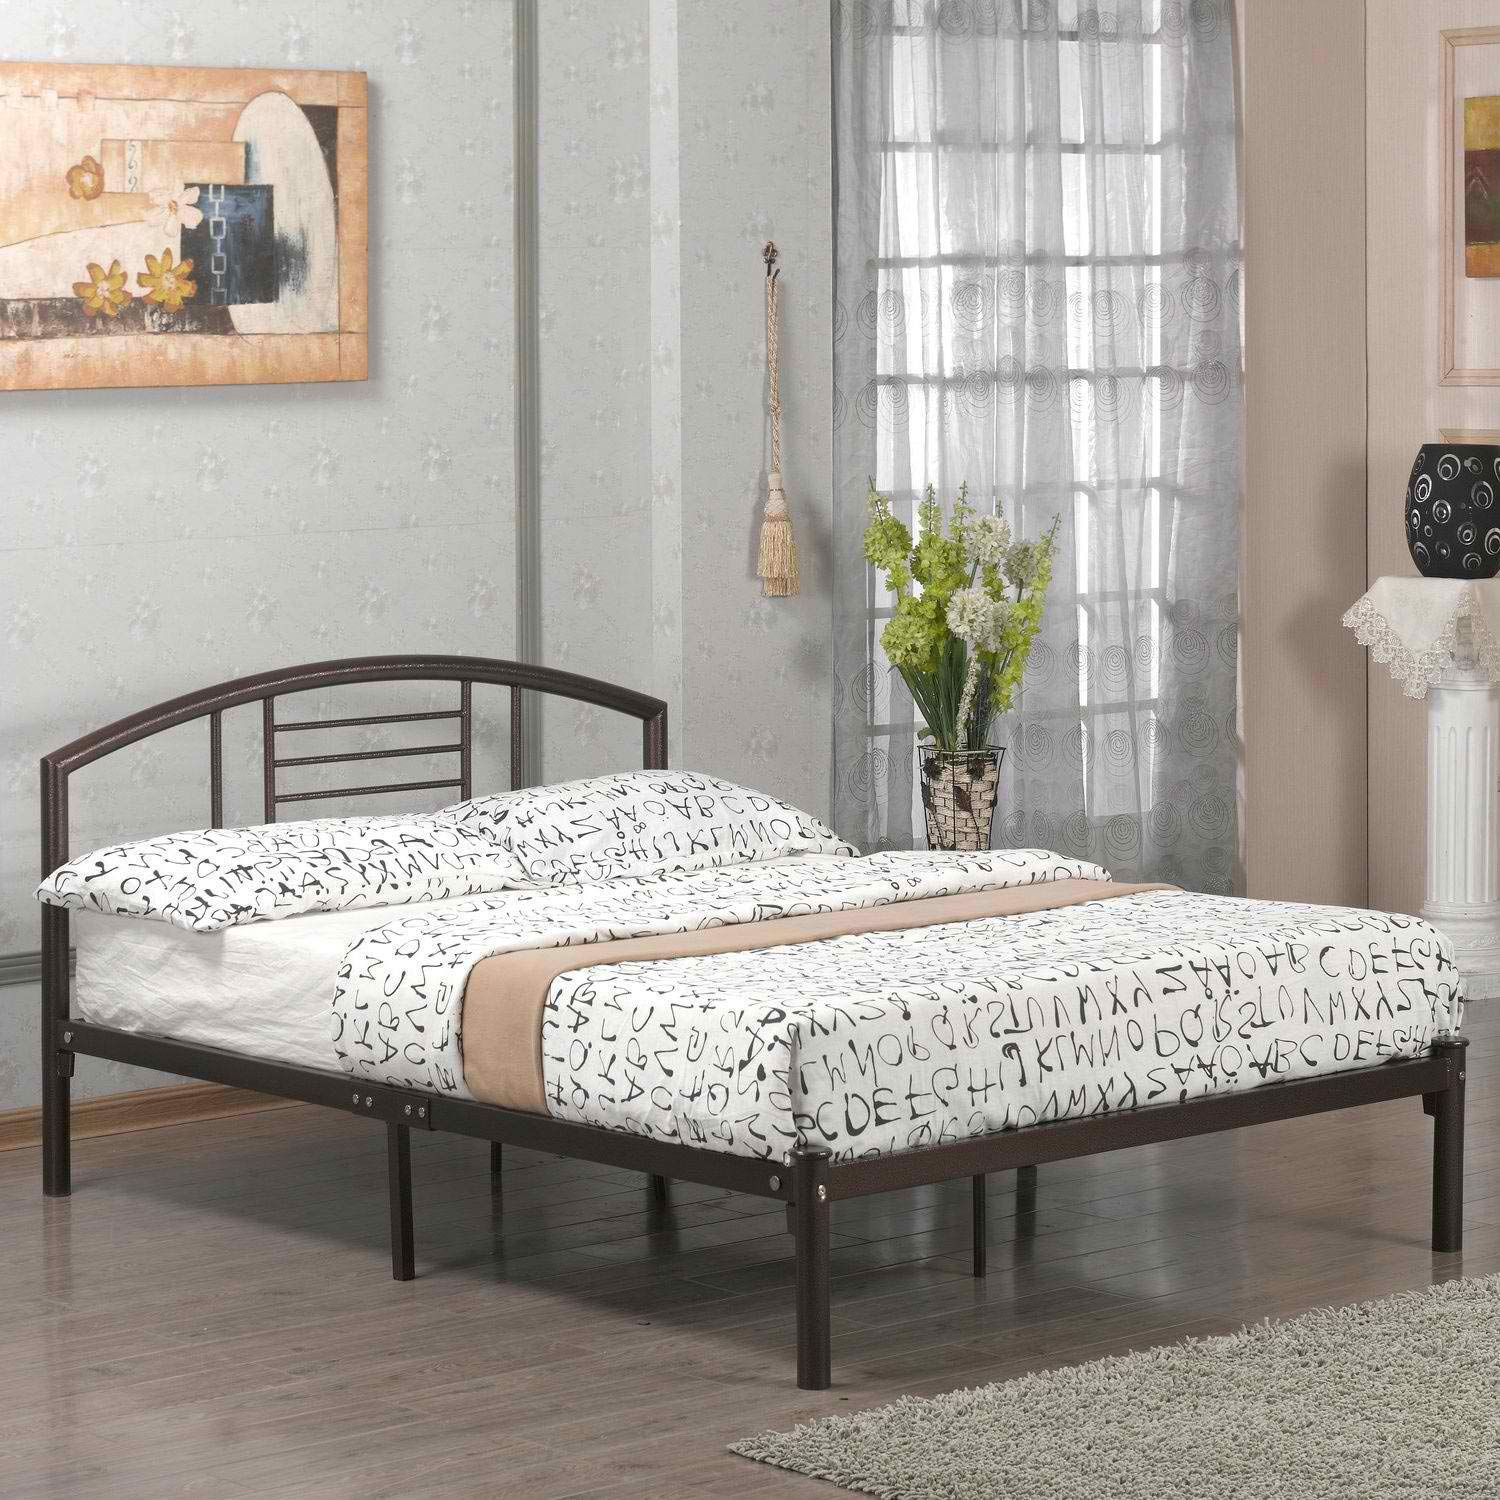 BeUniqueToday Twin Size Metal Platform Bed Frame with Headboard in Bronze Finish, Twin Size Metal Platform Bed Frame with Headboard in Bronze Finish Would be A Great Addition to Your Home